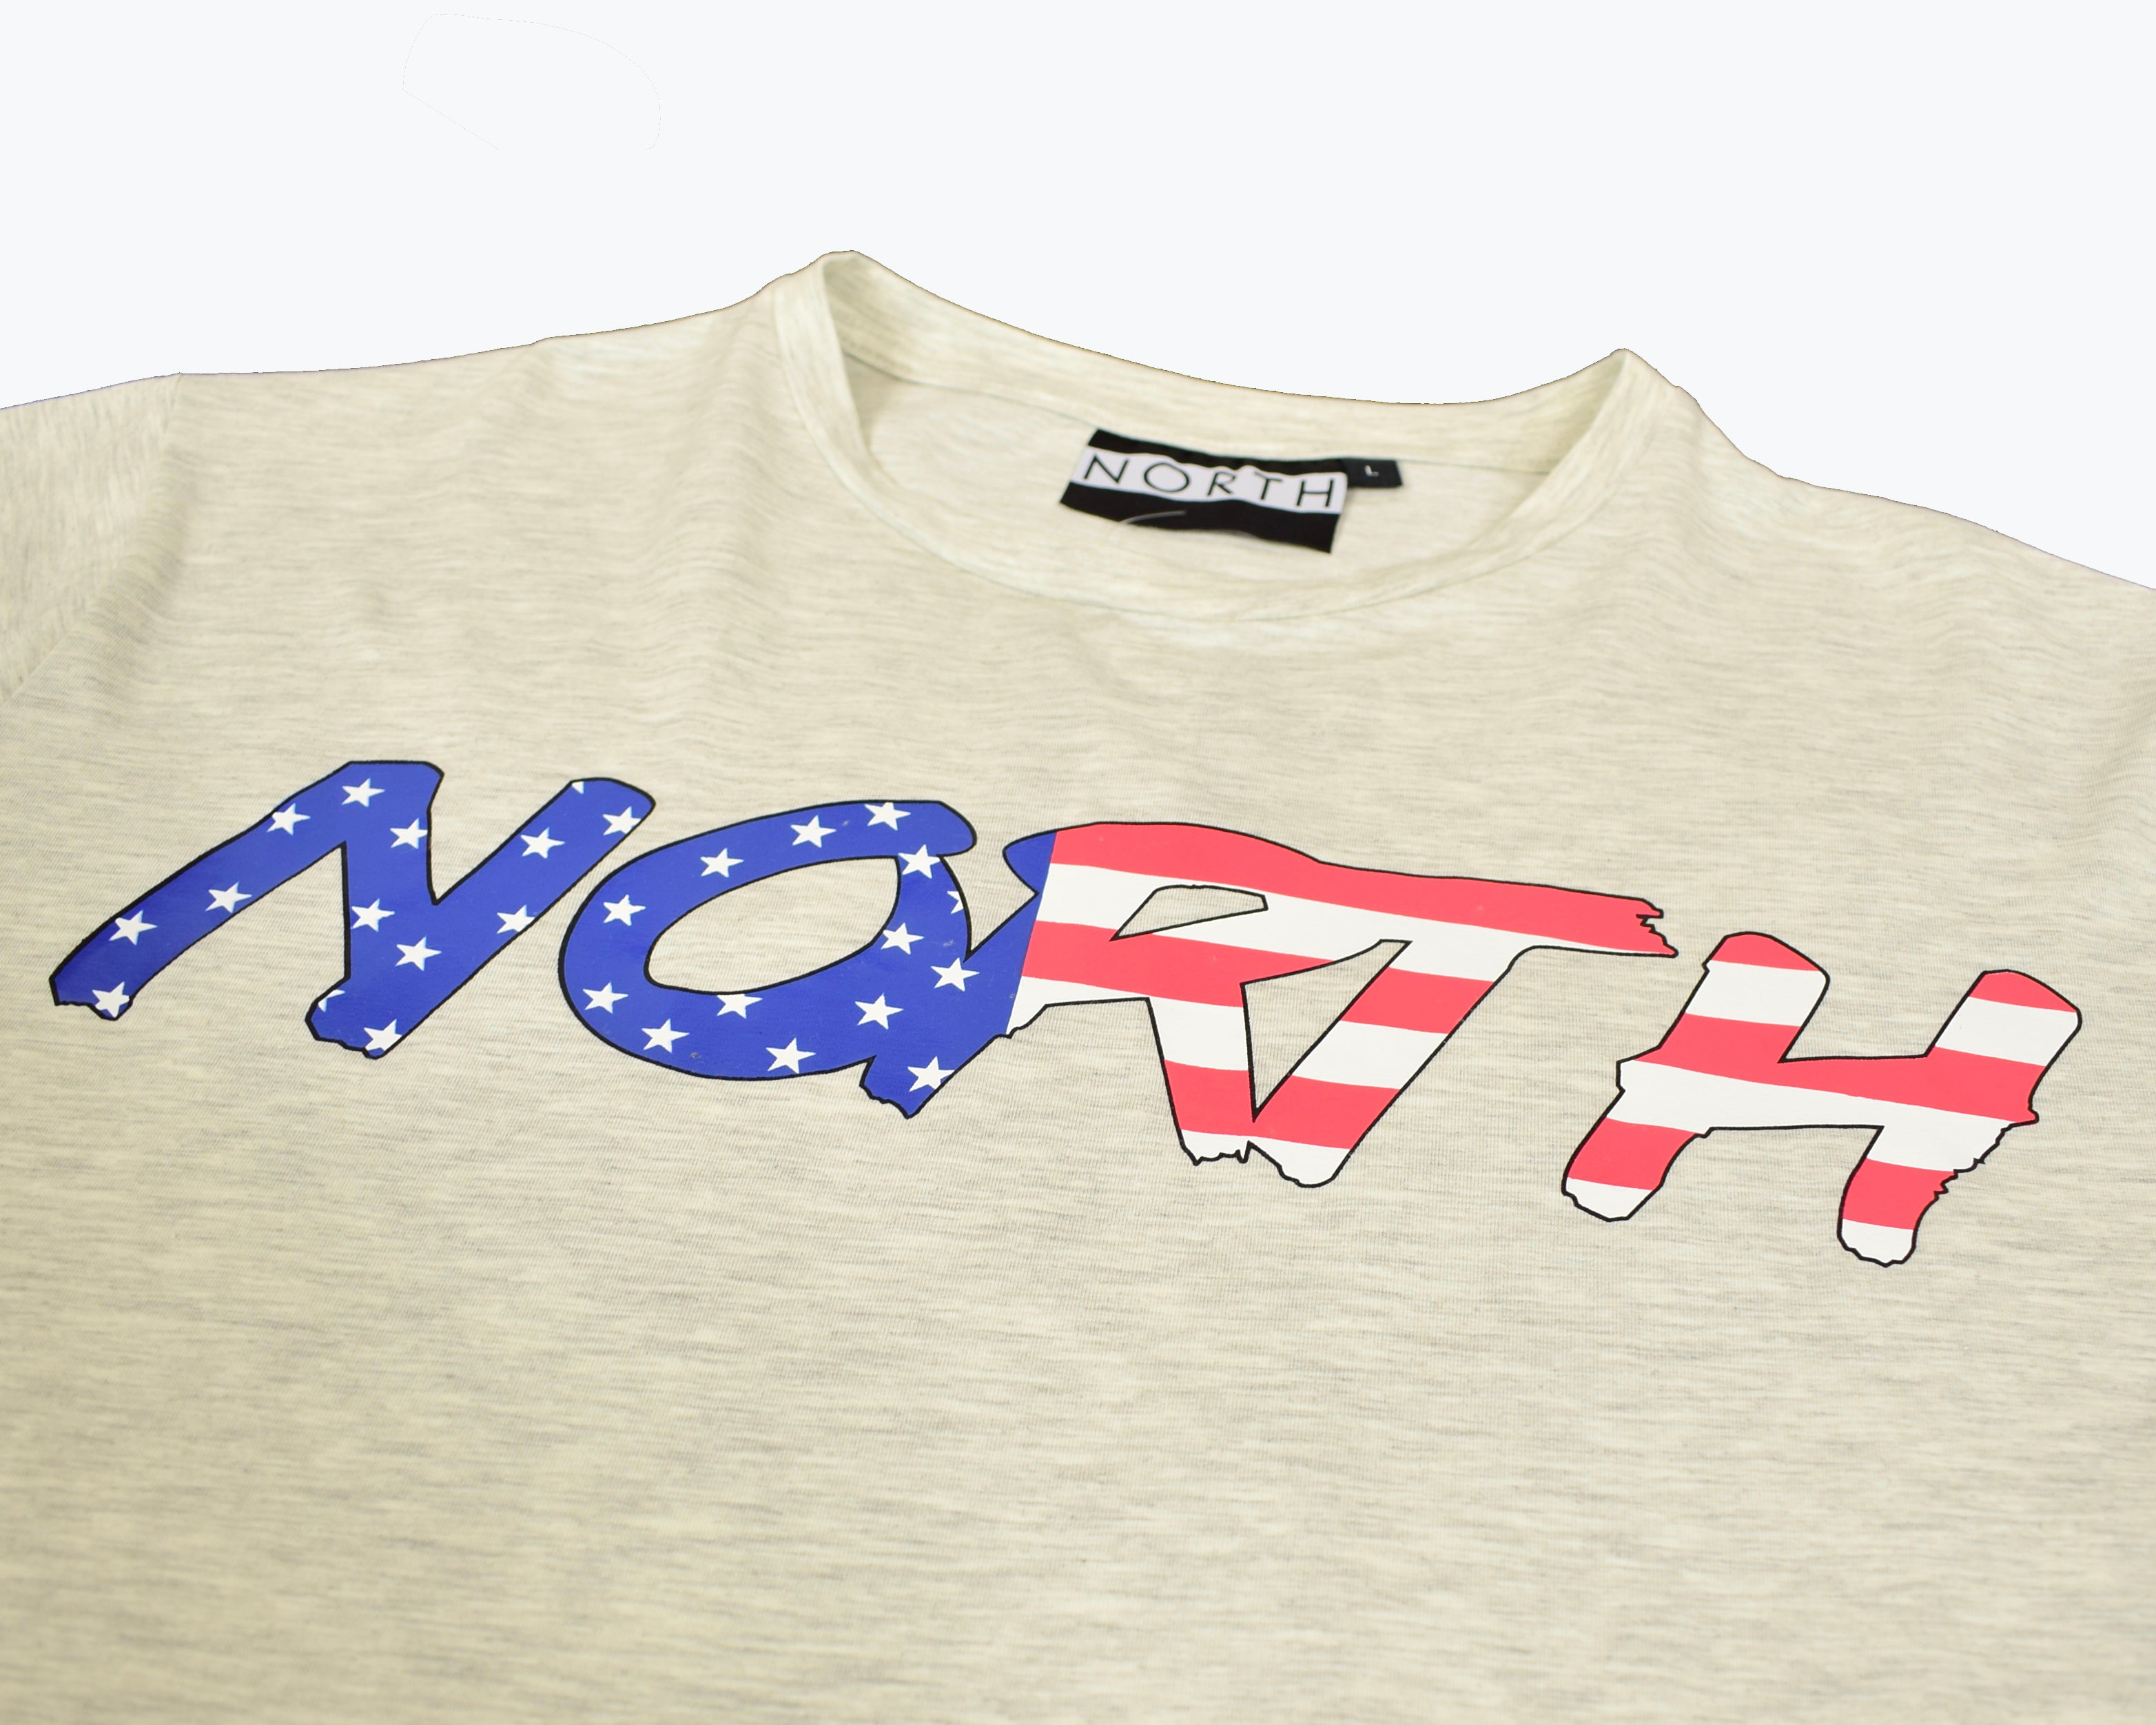 NORTH USA FONT FLAG LOGO UNISEX T SHIRT